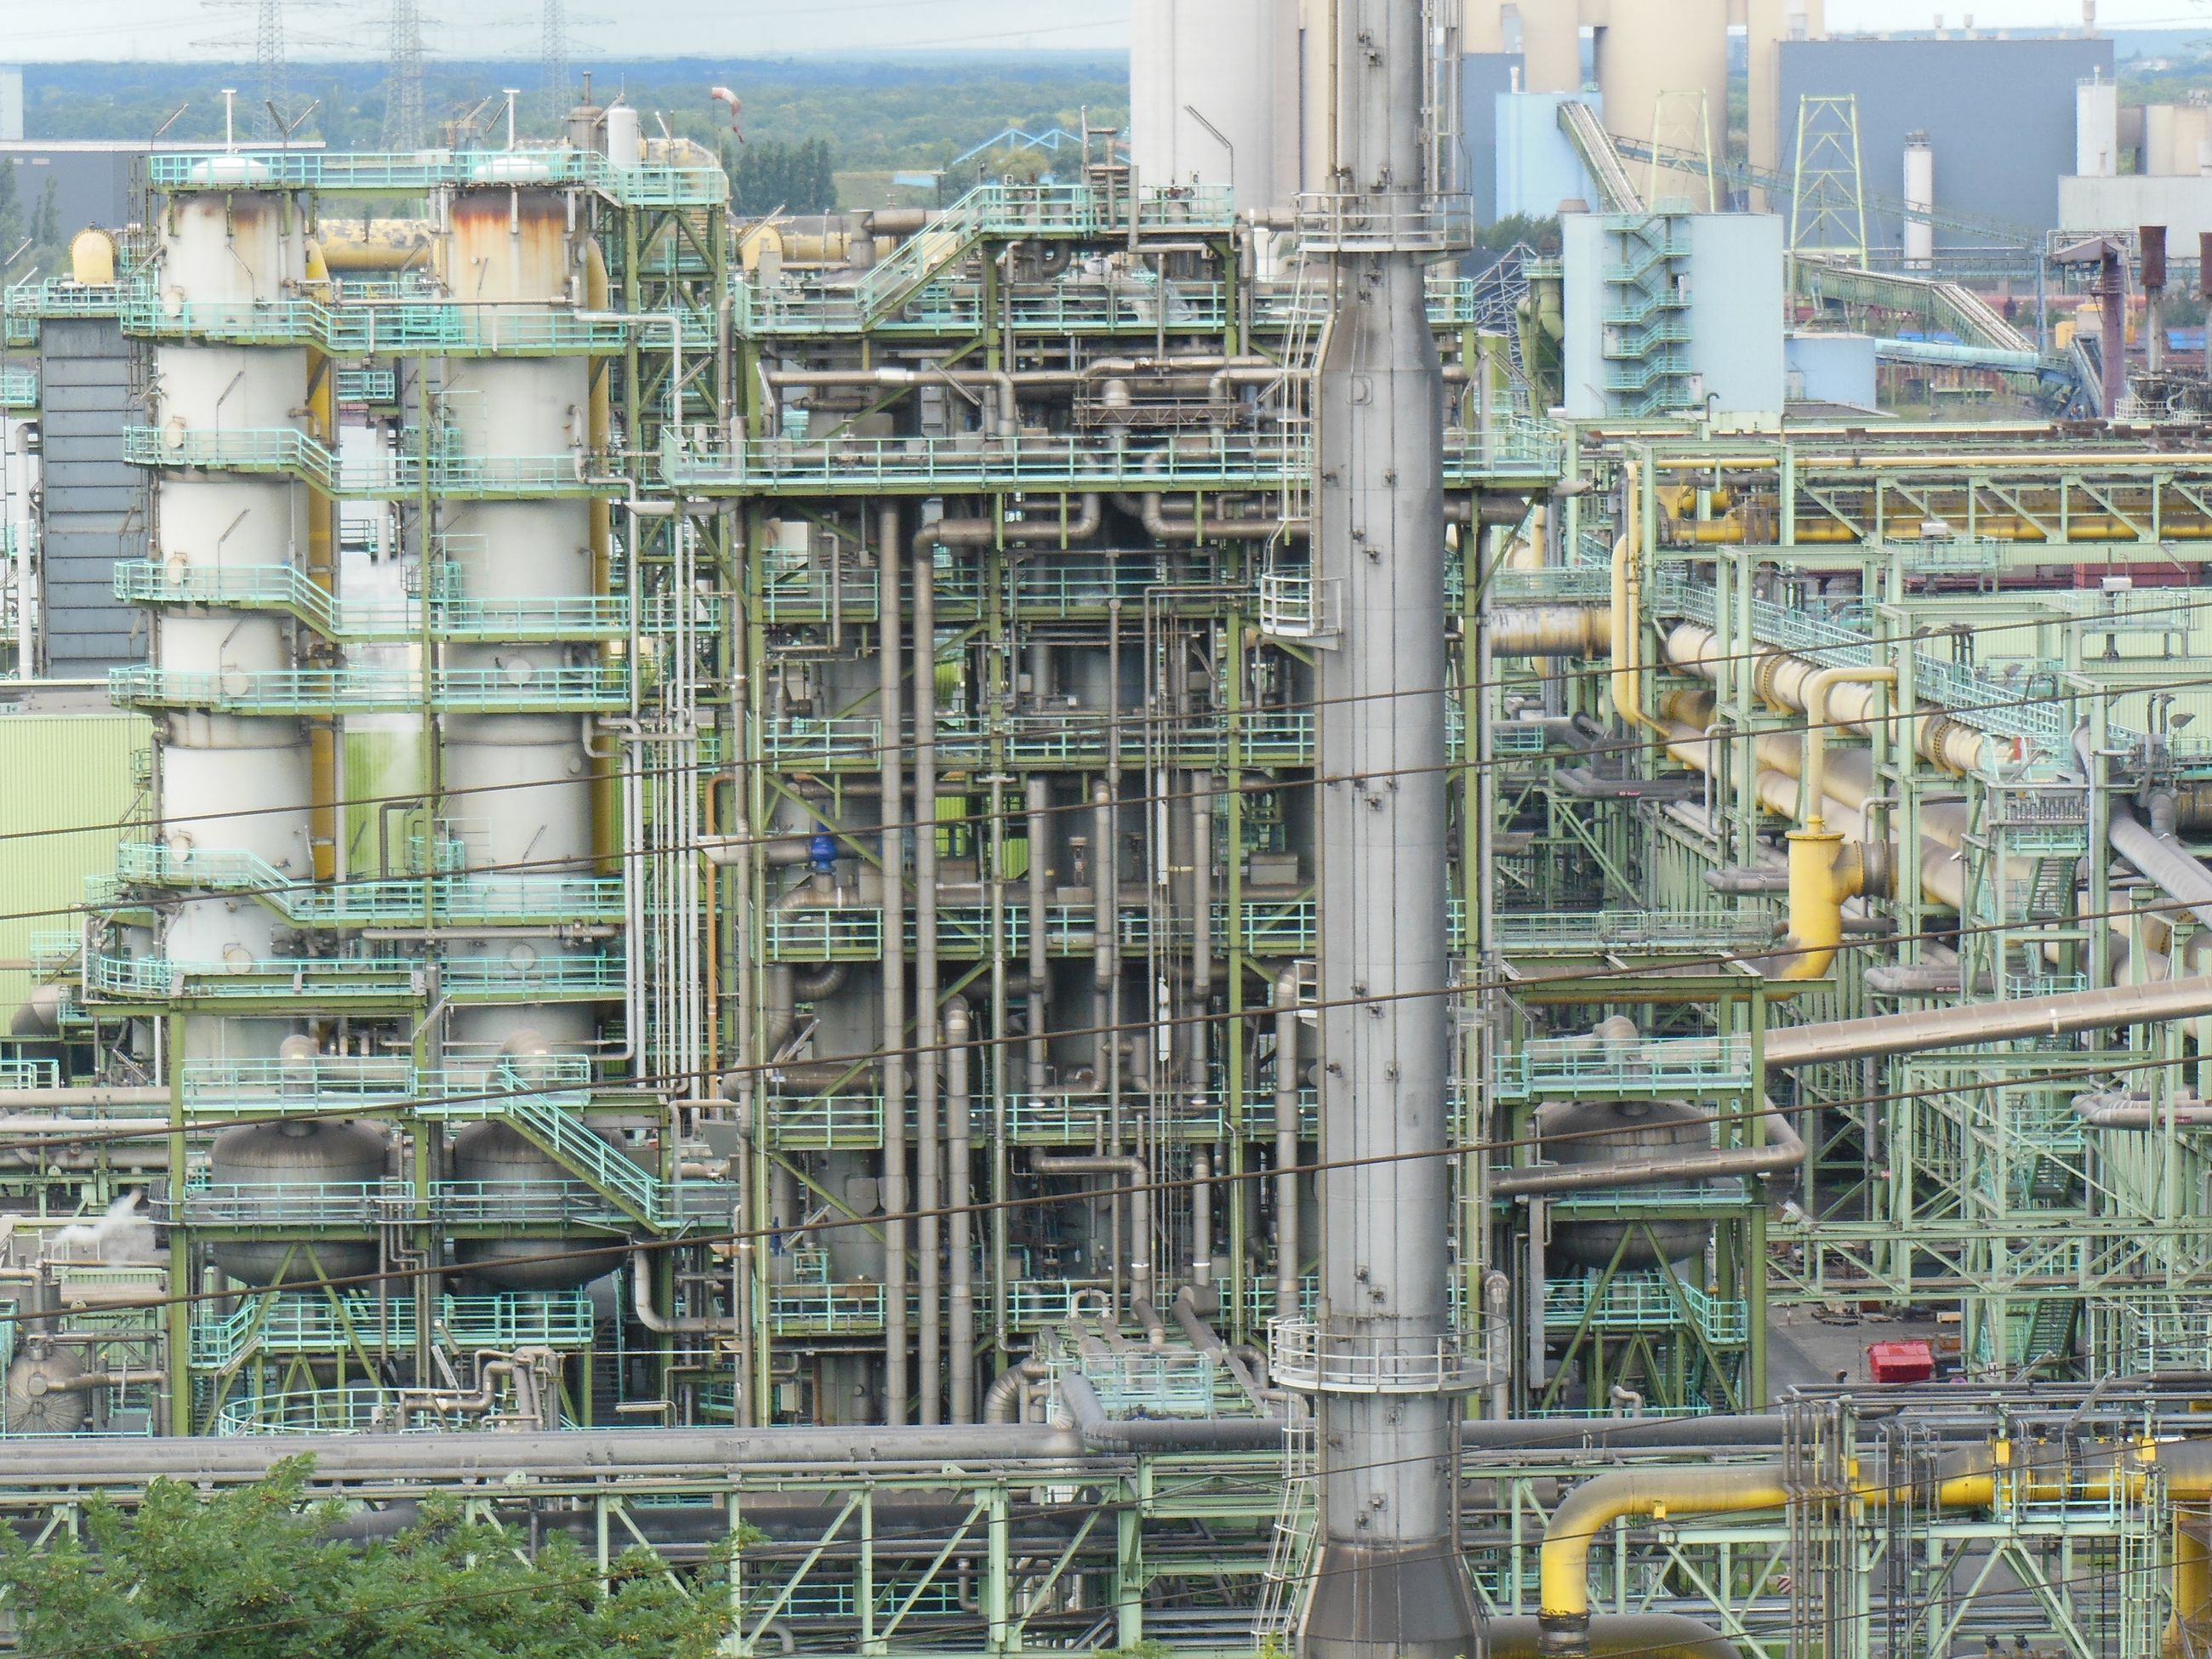 industry, pipe - tube, factory, oil industry, pipeline, fuel and power generation, oil refinery, refinery, petrochemical plant, tube, metal, built structure, industrial building, day, no people, storage tank, complexity, technology, yellow, building exterior, outdoors, manufacturing equipment, close-up